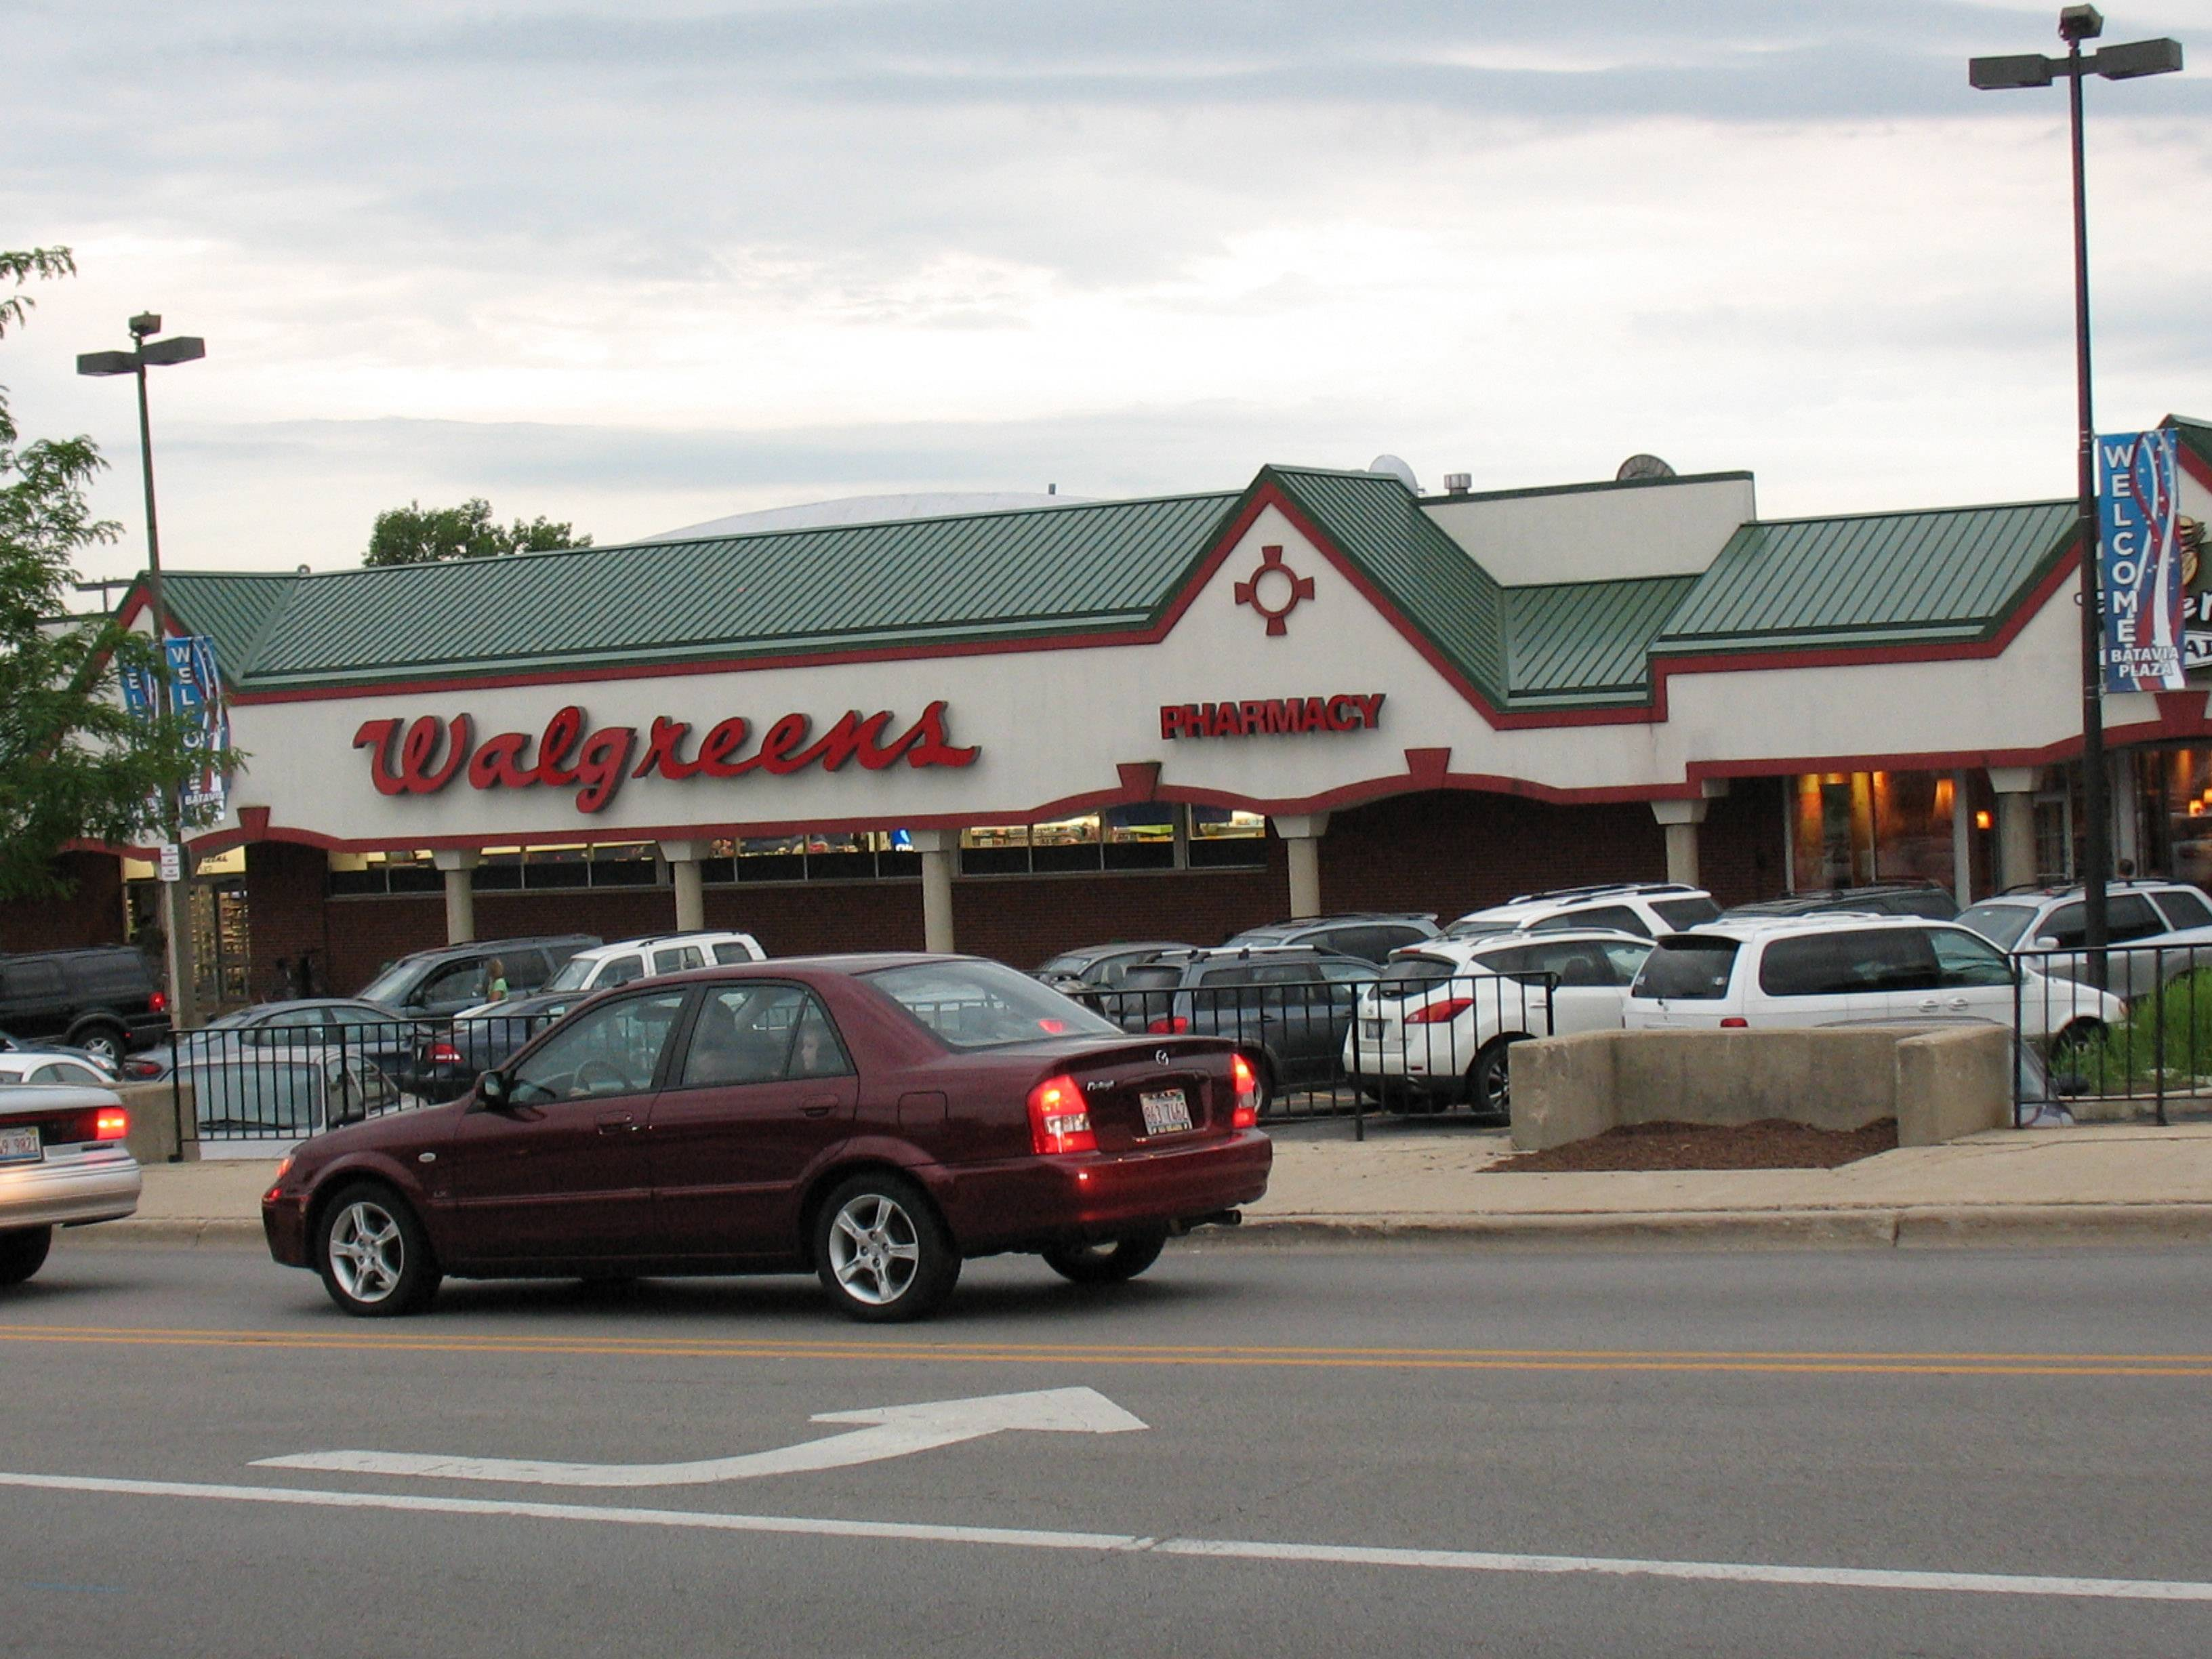 The Batavia City Council will vote Monday on a redevelopment agreement that would provide financial aid to build a new Walgreens in the downtown, replacing the current store.